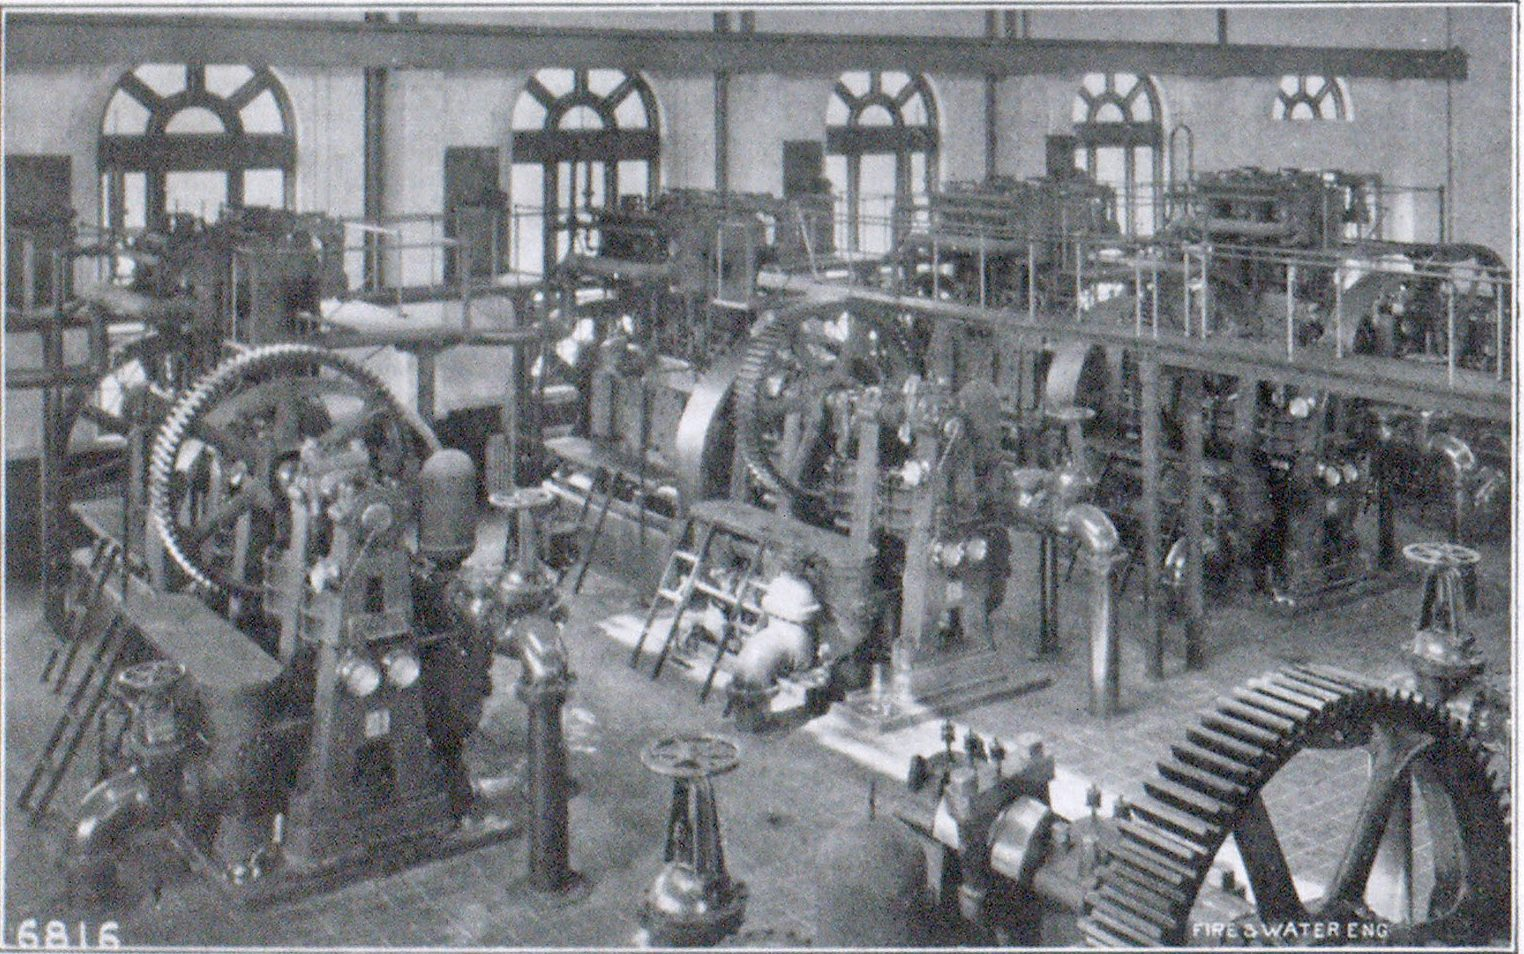 FIG. 3. INTERIOR VIEW, SECOND POWER STATION.